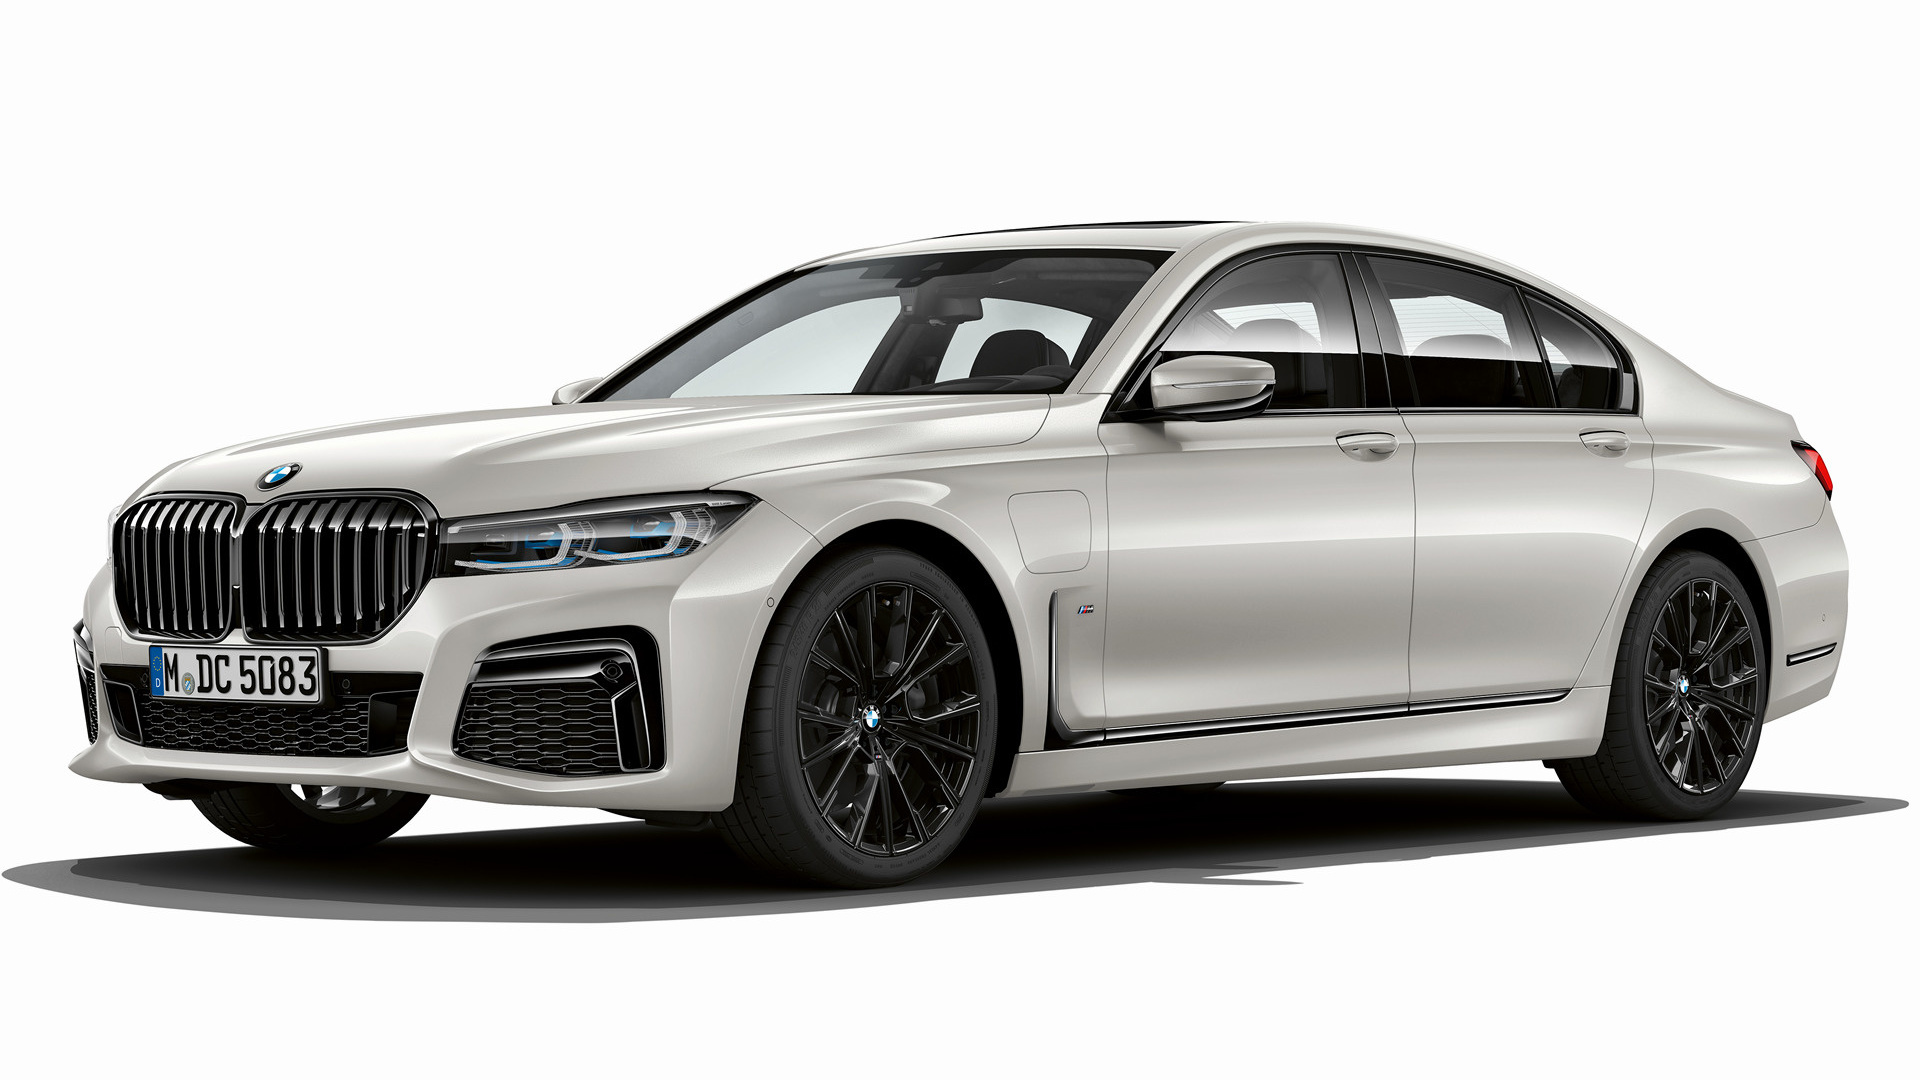 2019 bmw 7 series plug in hybrid m sport wallpapers and. Black Bedroom Furniture Sets. Home Design Ideas